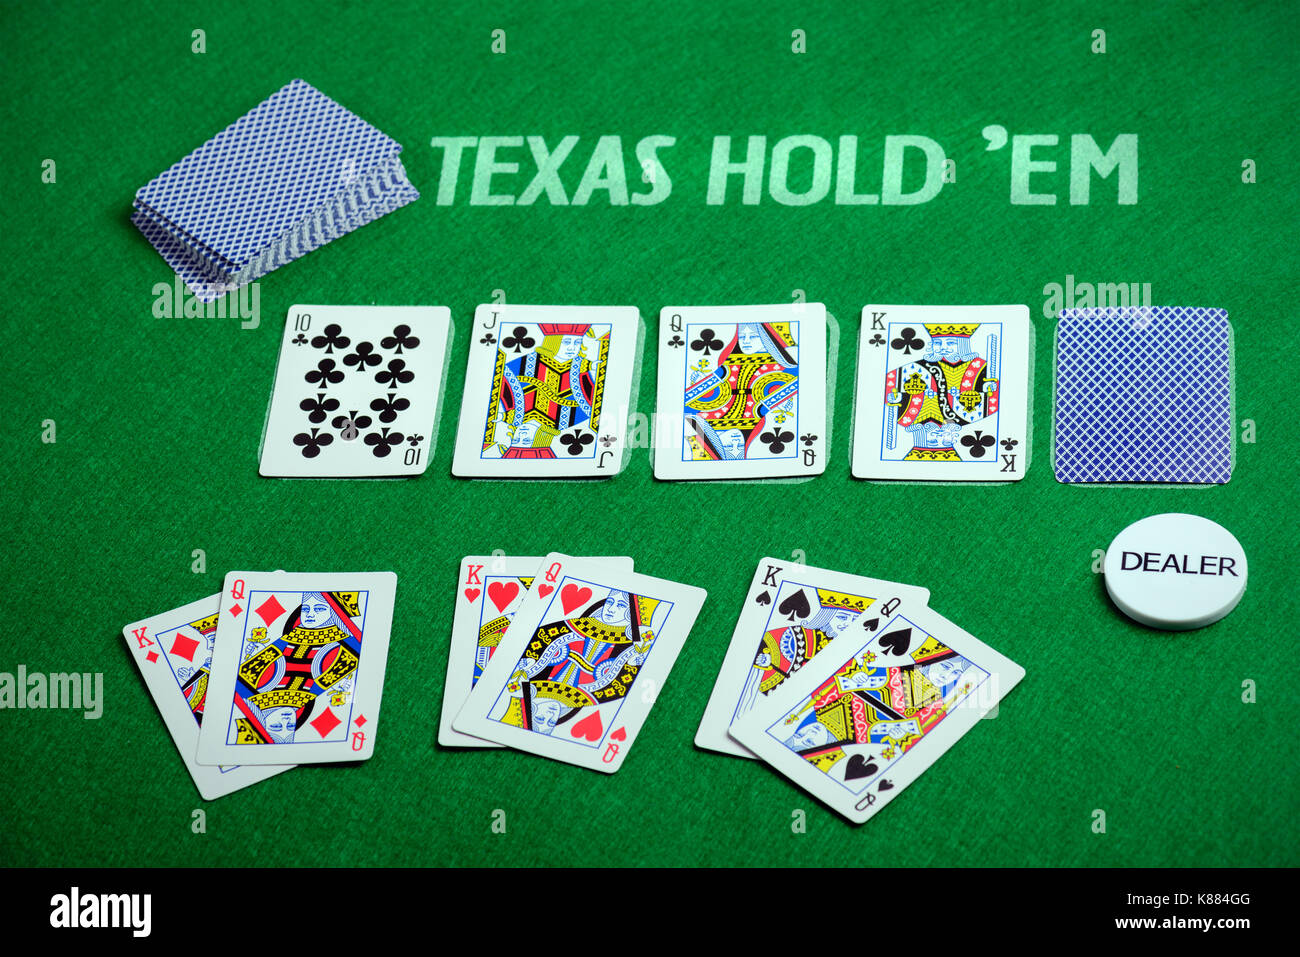 Poker cards on green poker cloth. Texas Hold'em - Stock Image